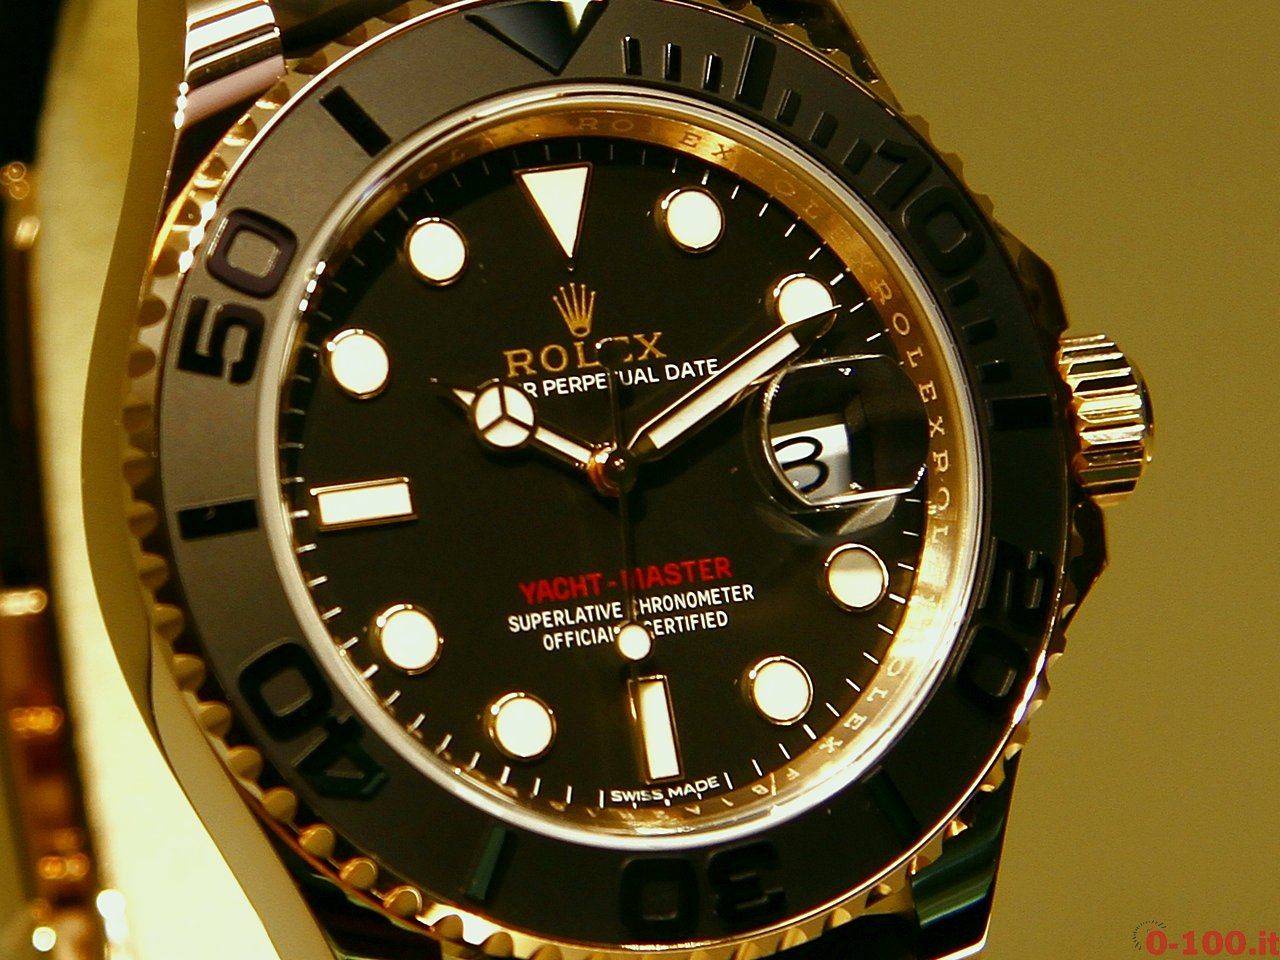 Speciale Baselworld 2015 - lo stand ROLEX